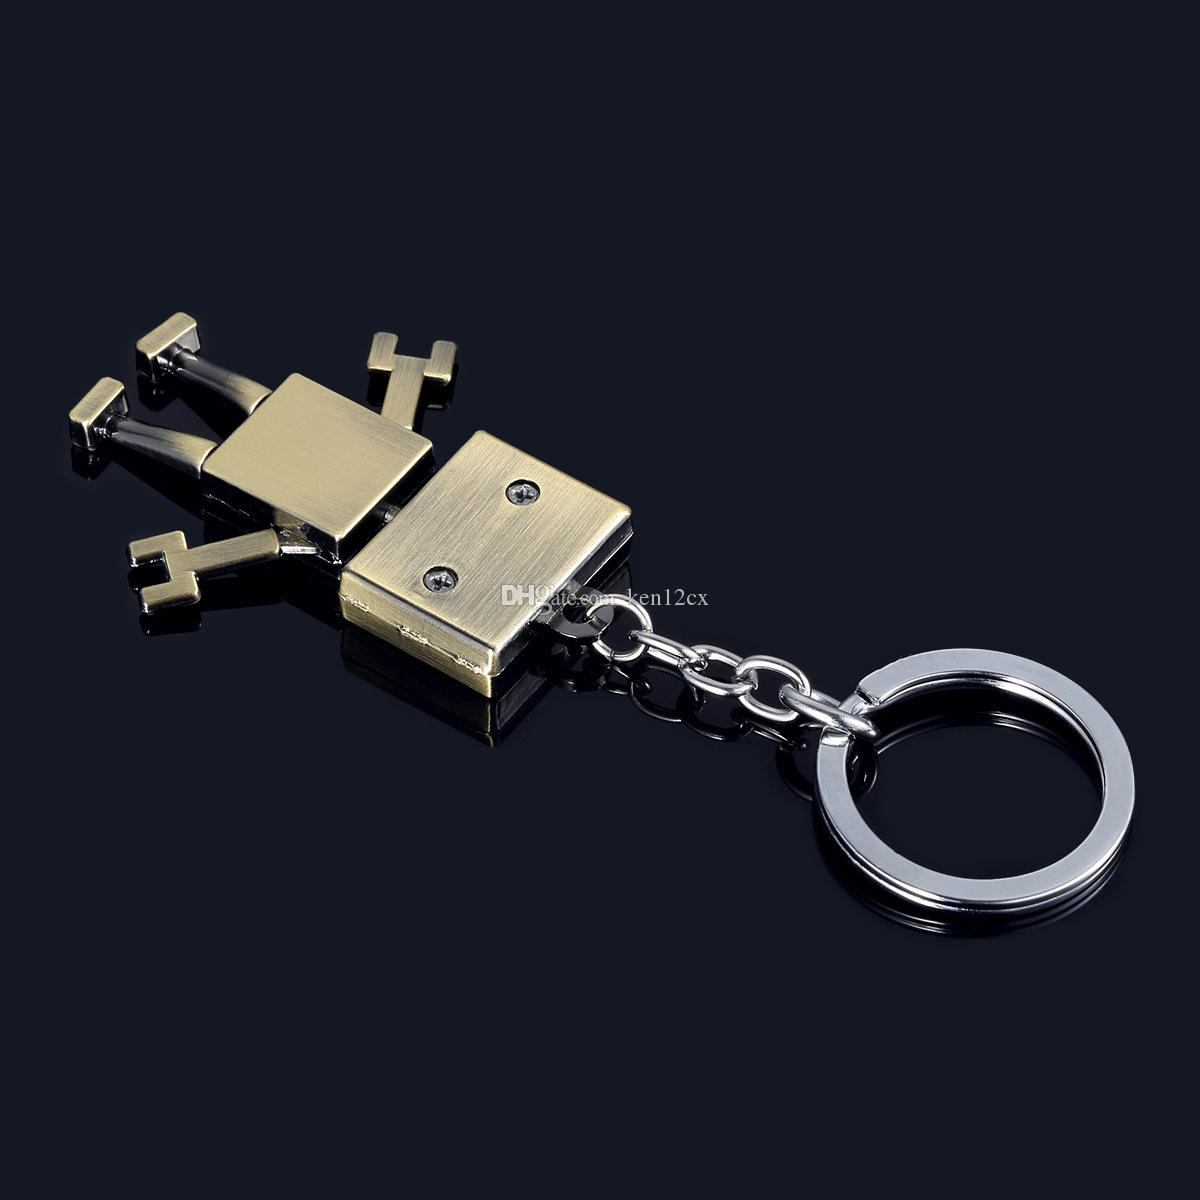 Men Children Accessory Cute Alloy Robot Keychain Creative Jewelry Key rings Car Key Chains kids Adults Chaveiro Birthday Present toys